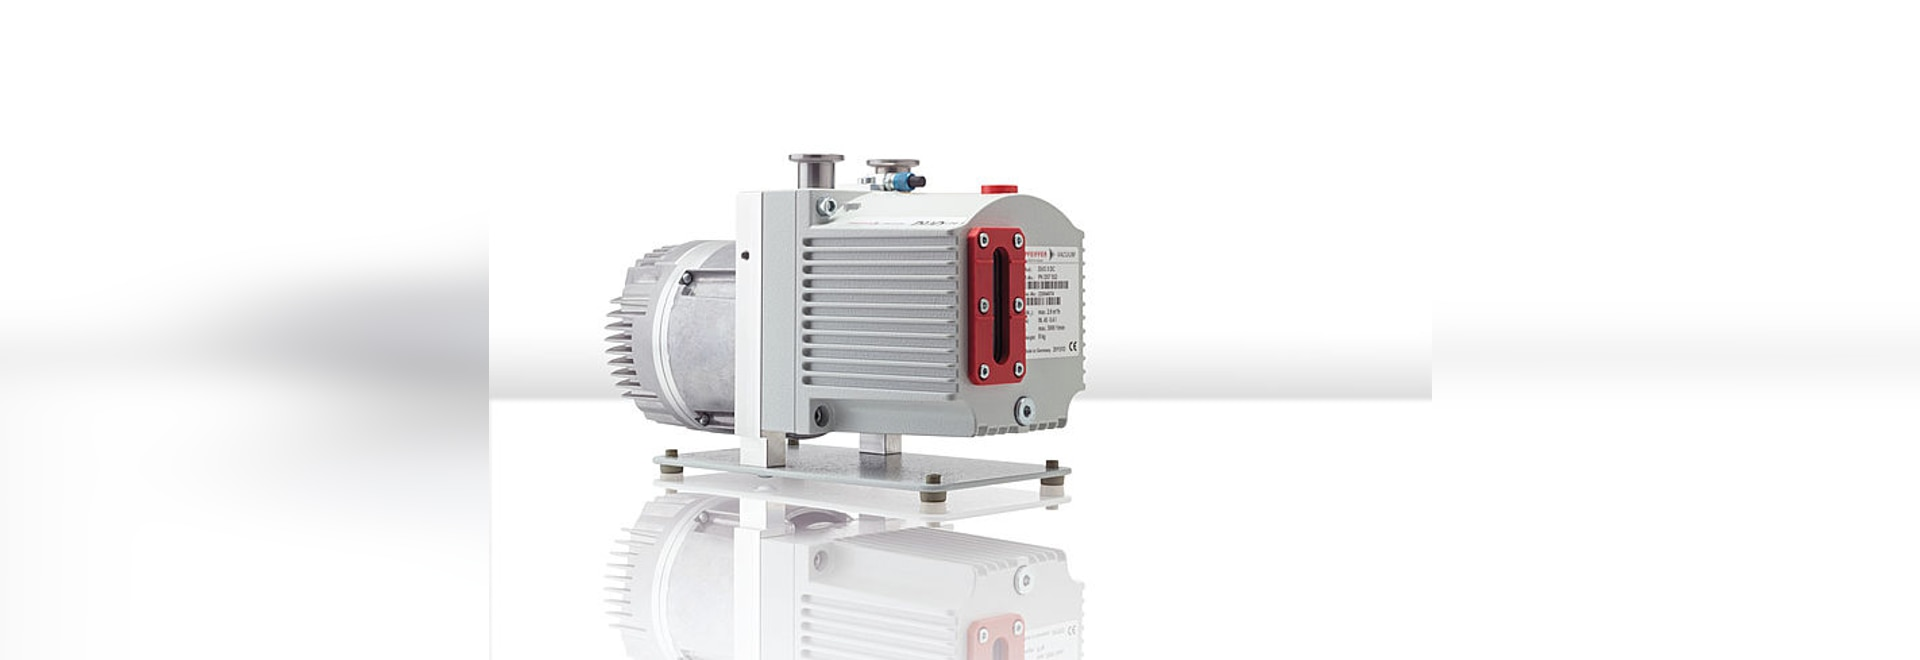 Pfeiffer Vacuum presents its New Duo 3 DC-type rotary vane pump with 24 volt DC